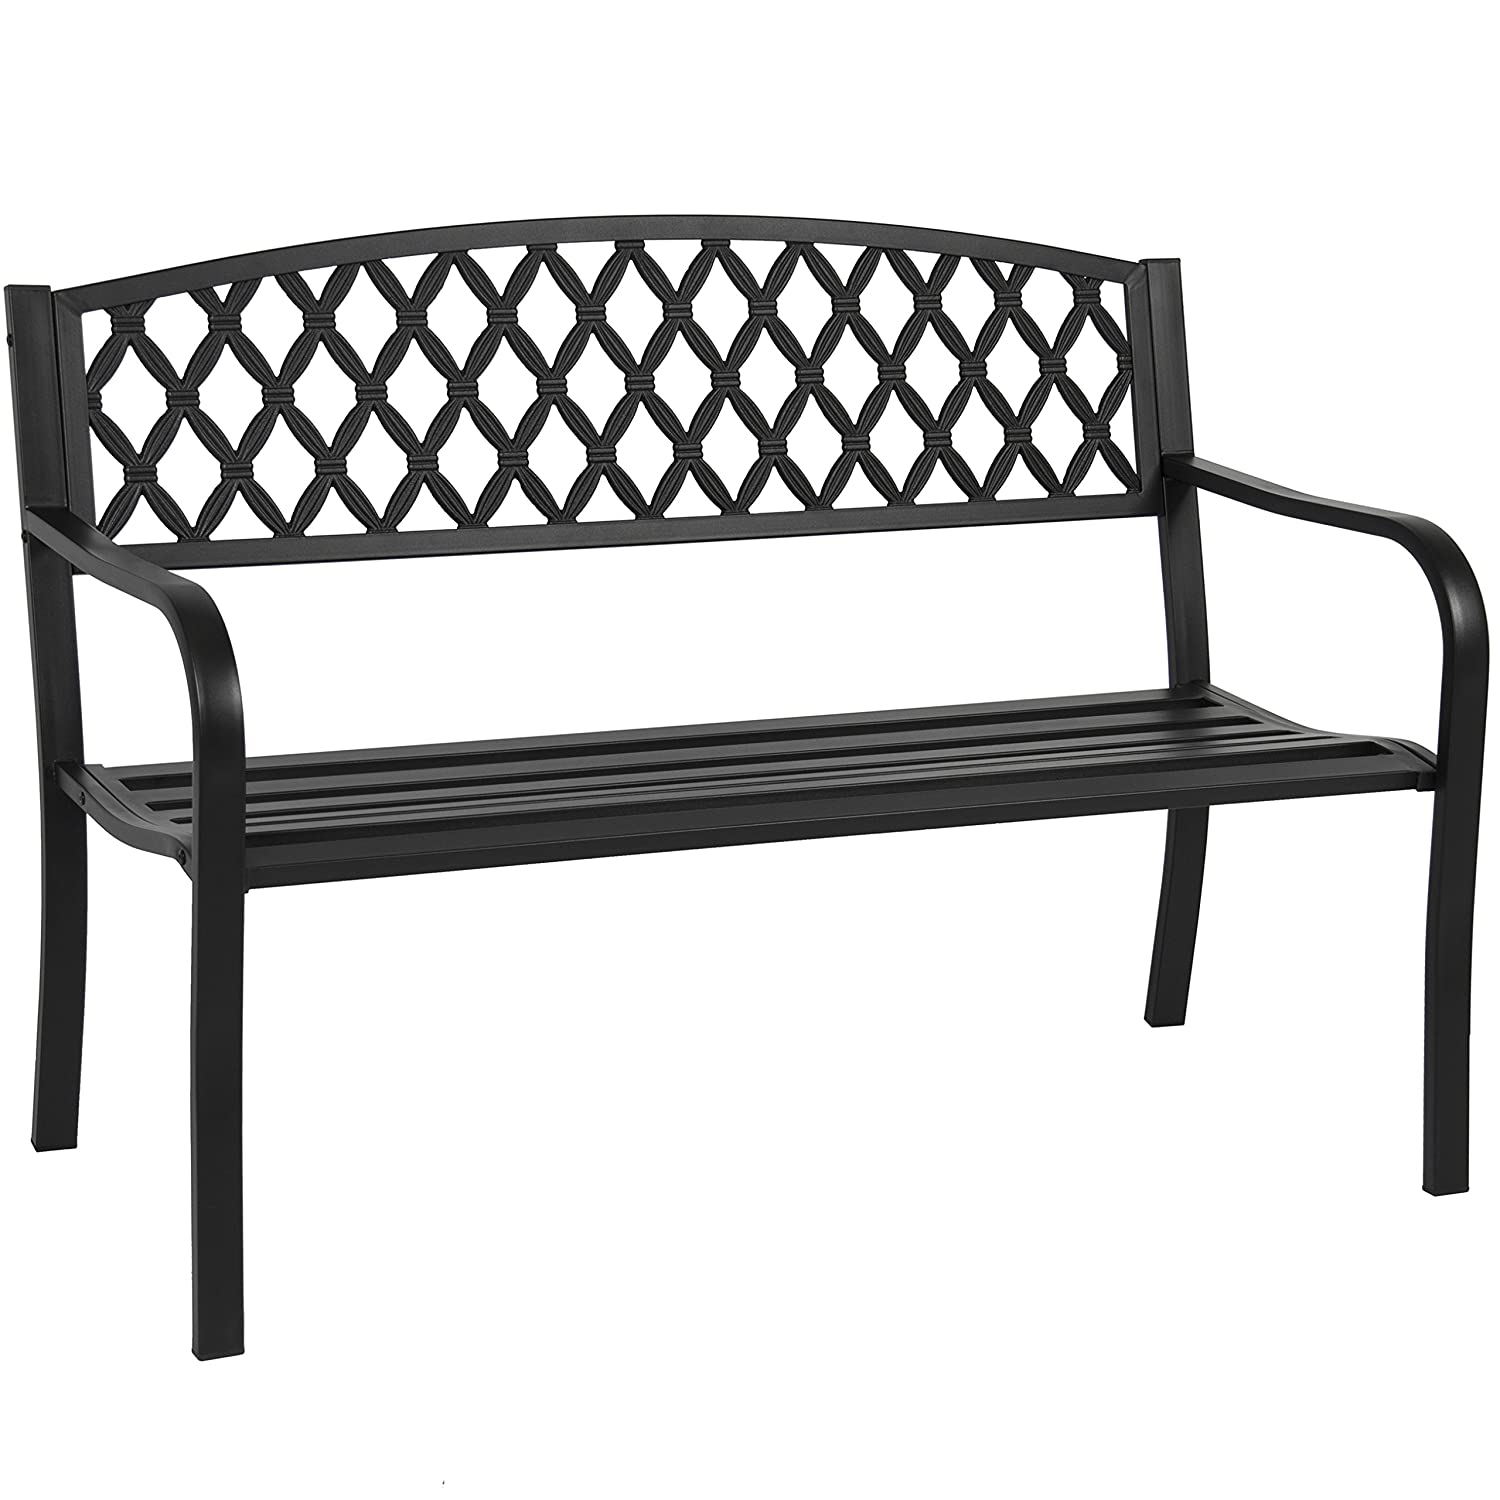 Outdoor benches patio chairs patio furniture the home depot iron outdoor metal garden bench Yard bench